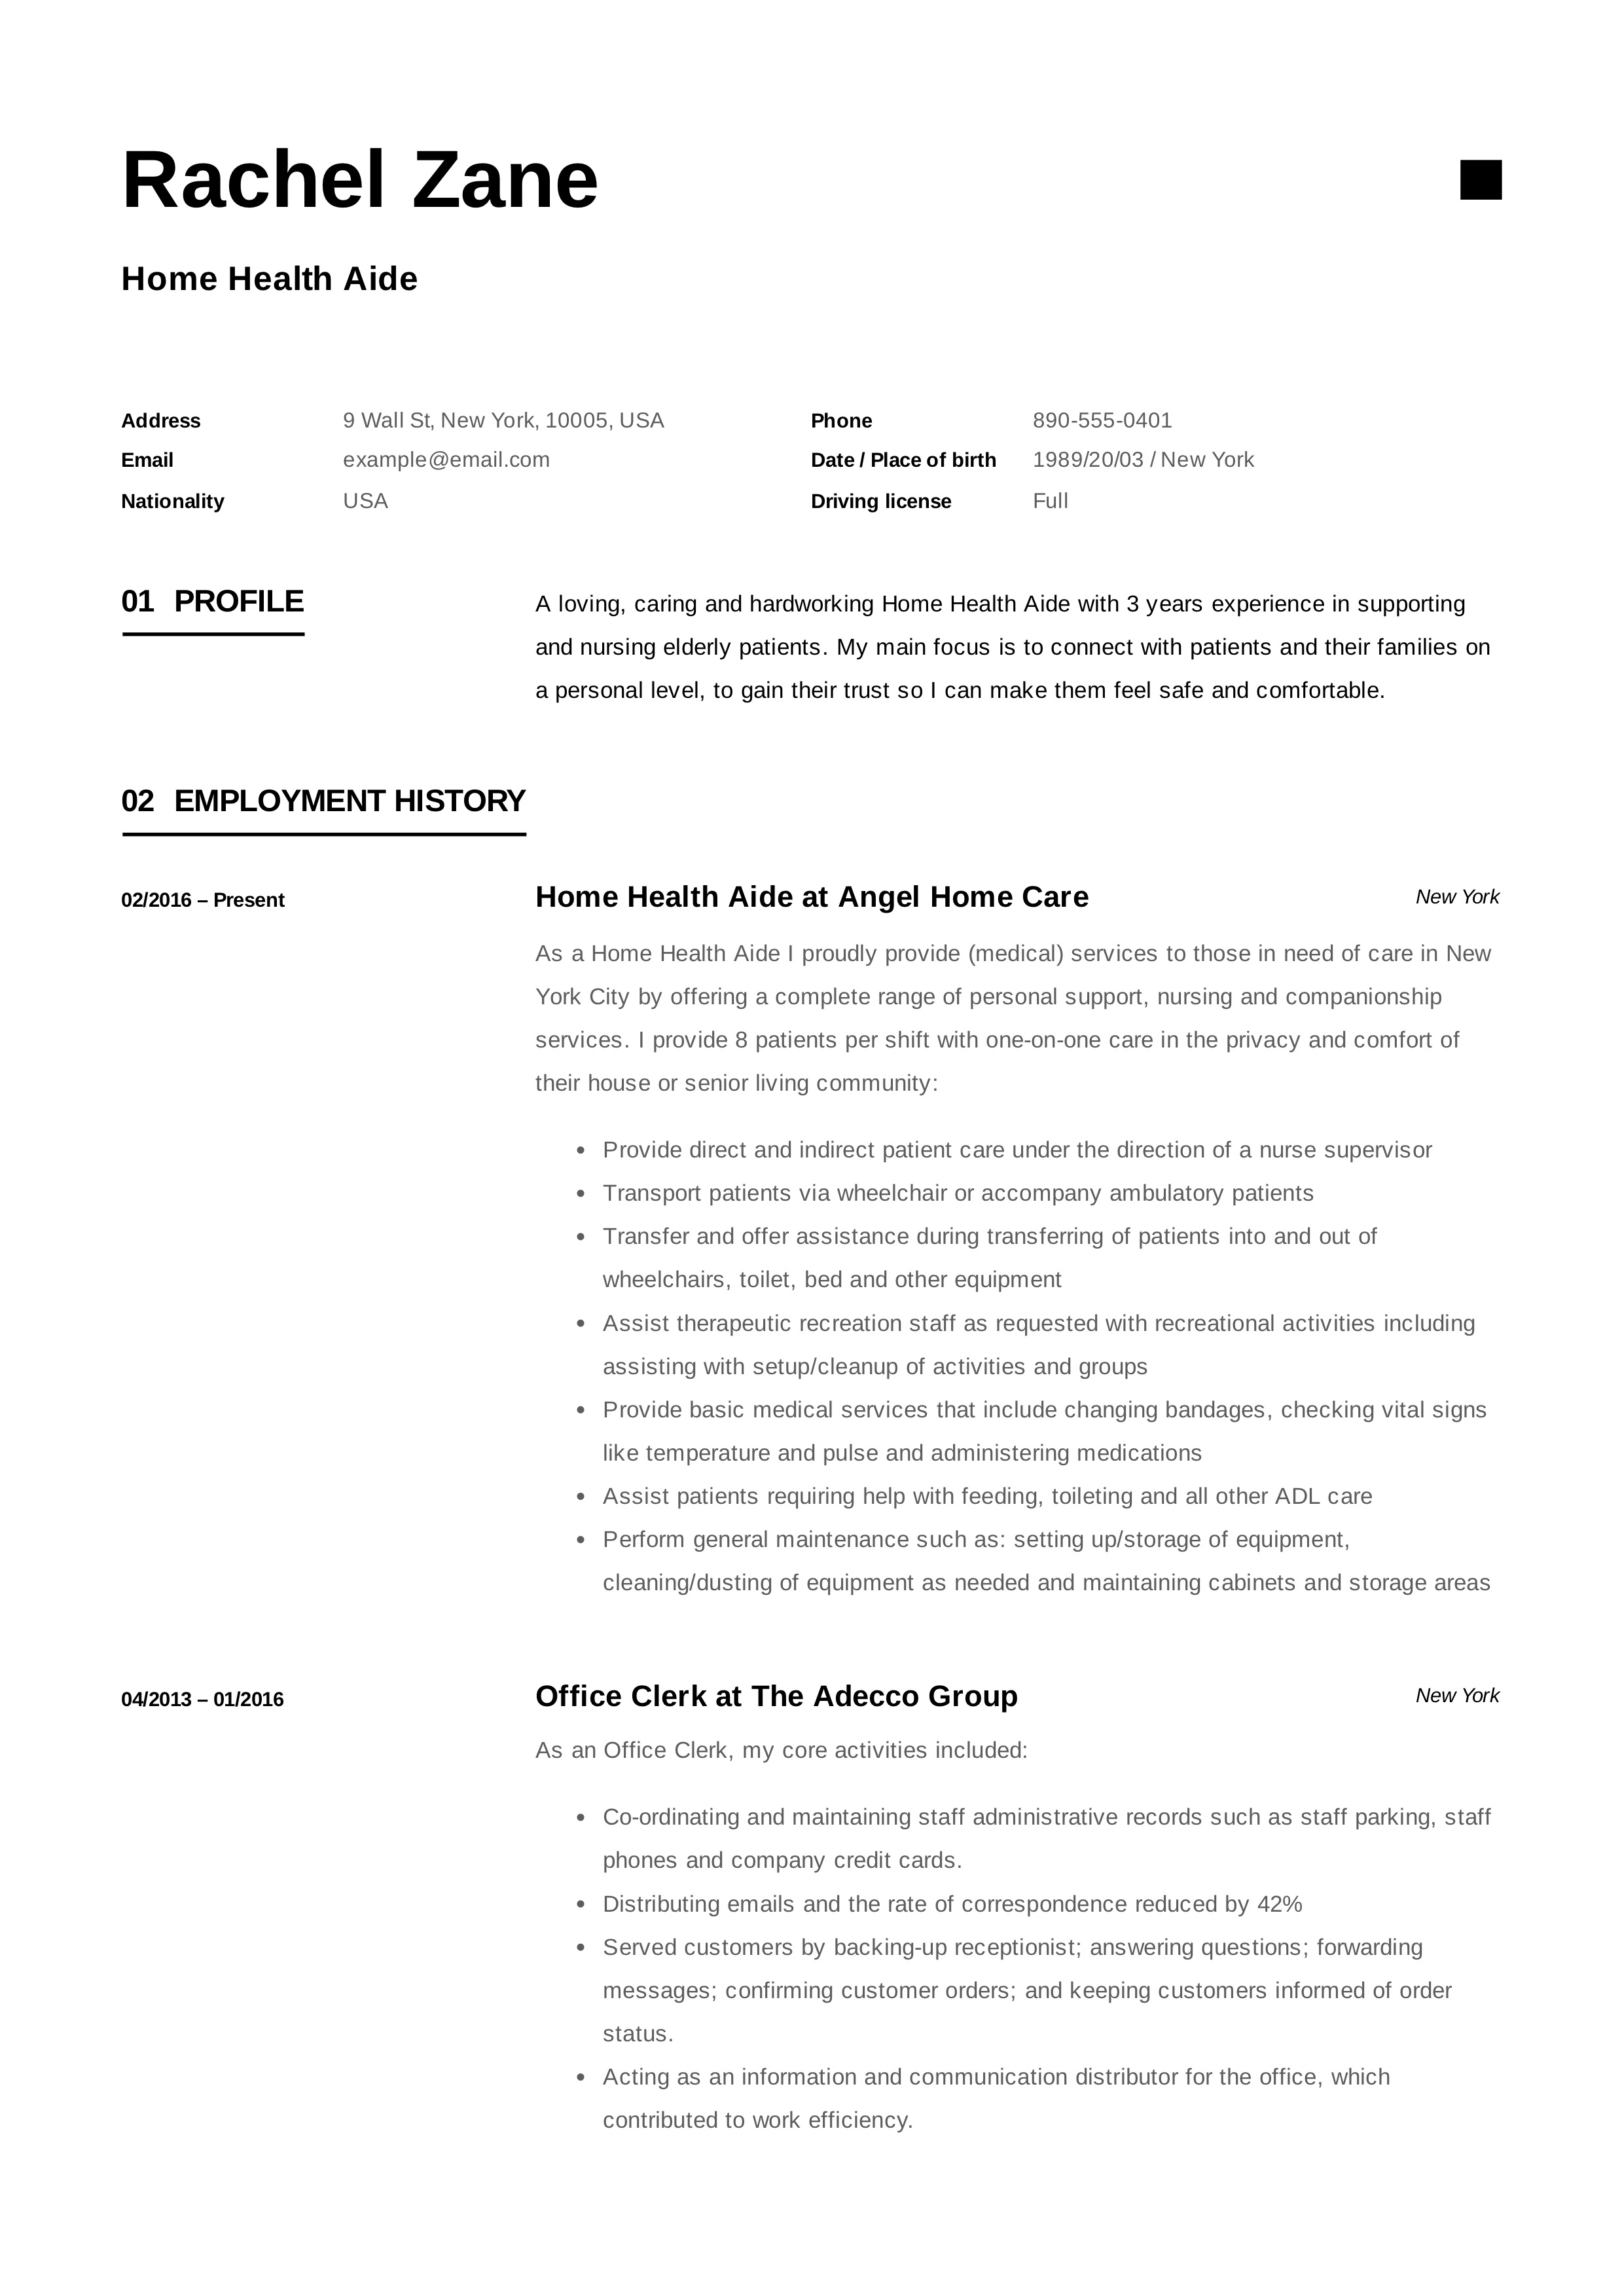 Home Health Aide Resume Sample Writing Guide